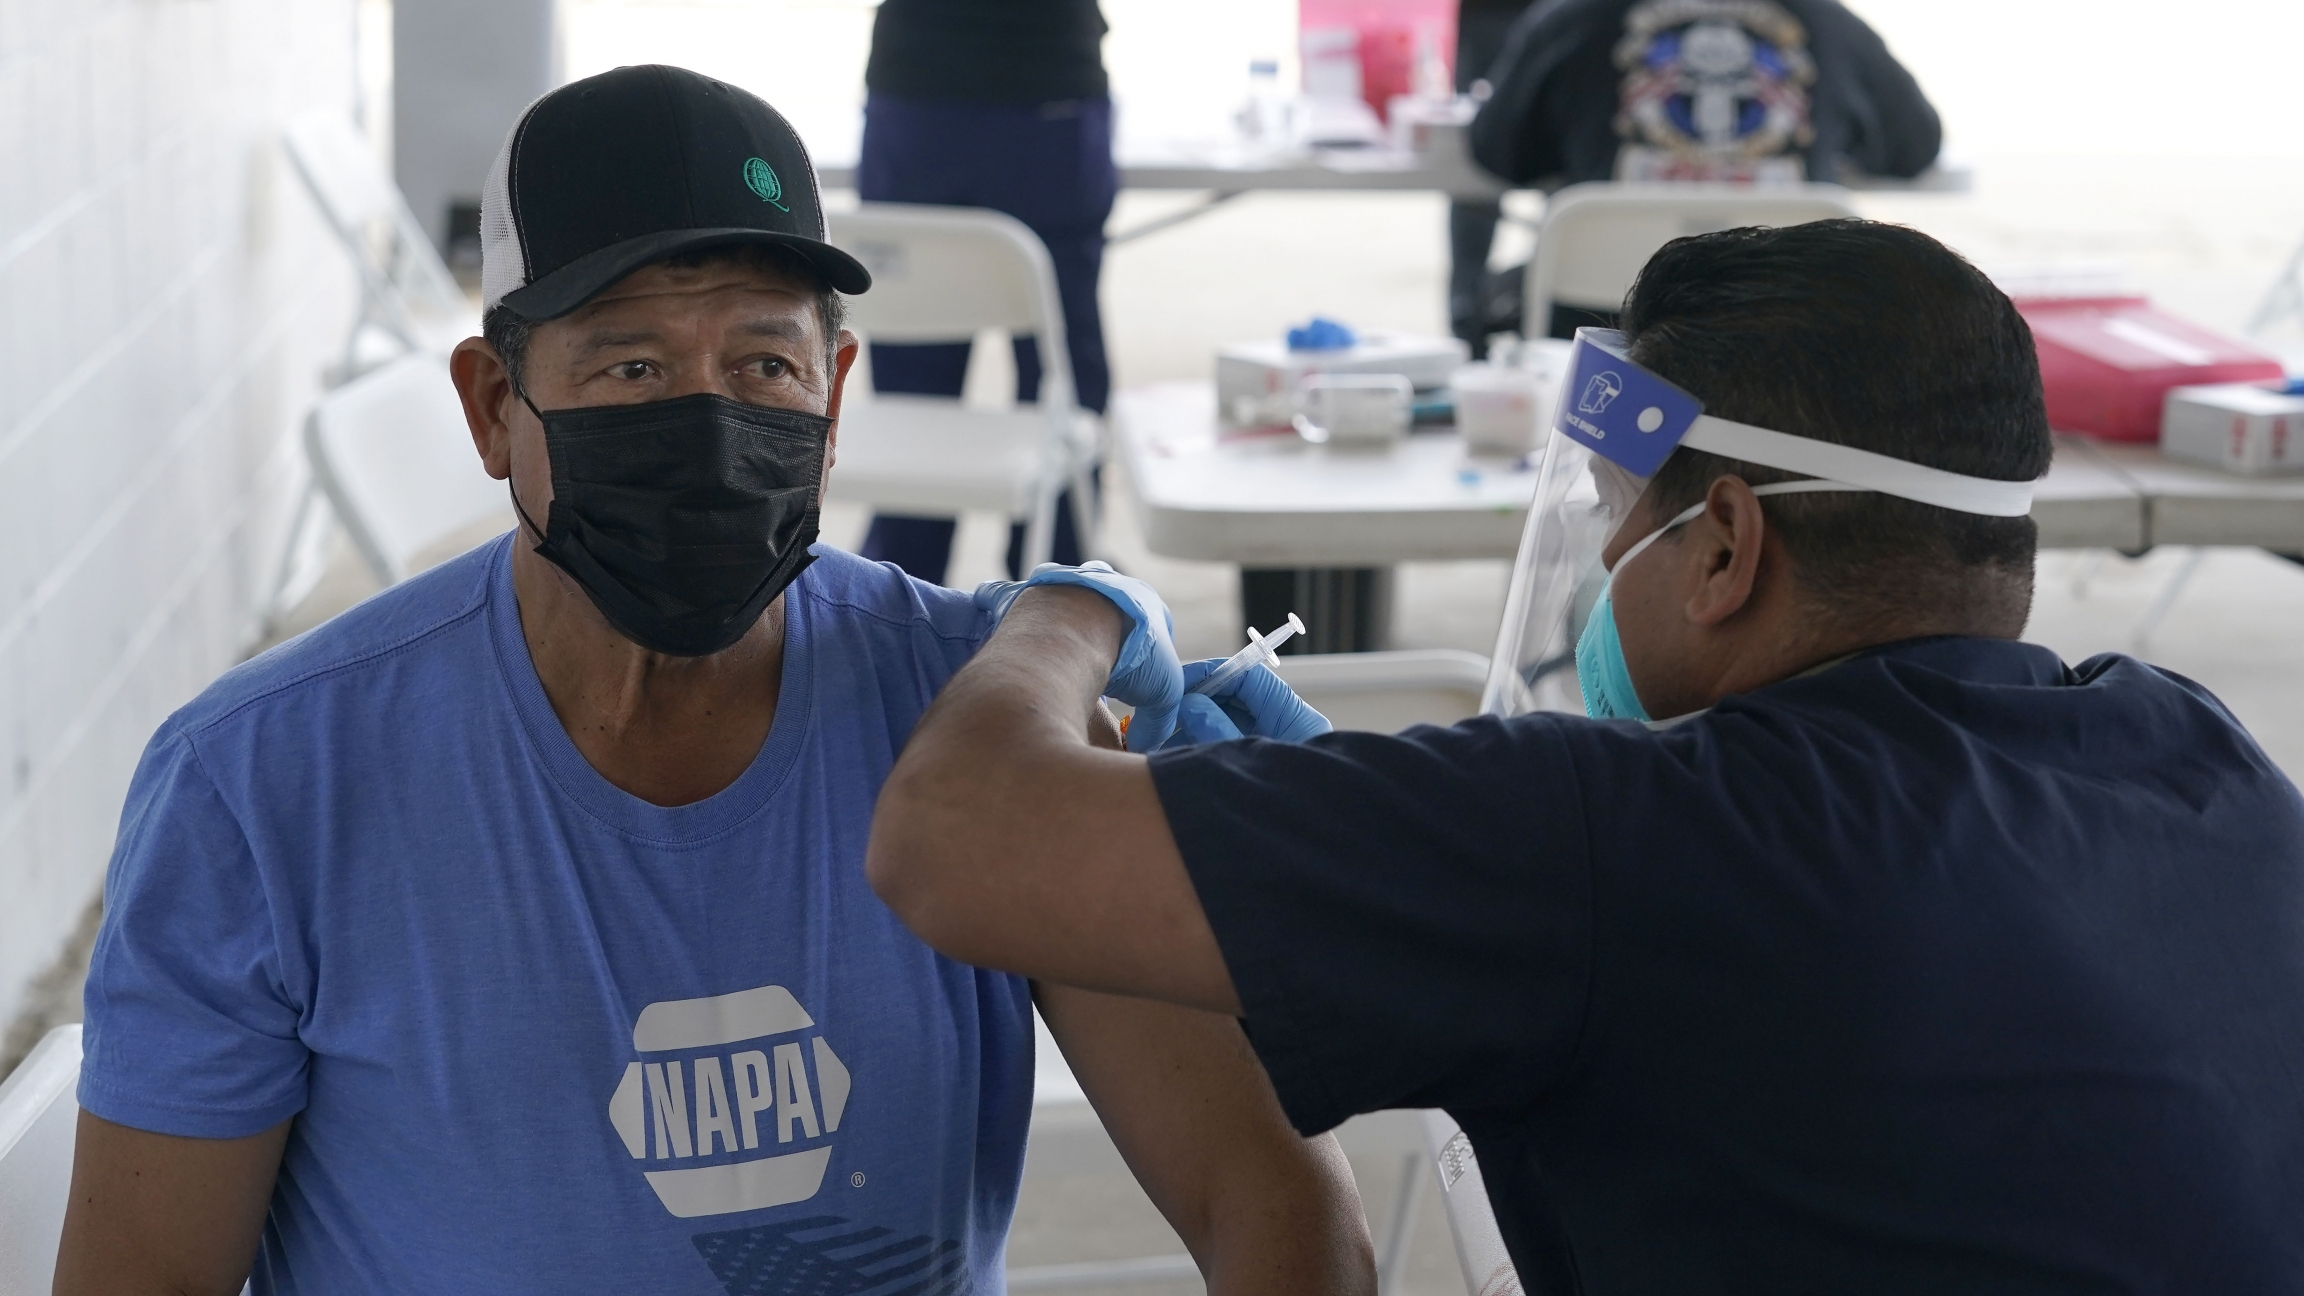 A man wearing a blue shirt and black cap gets a vaccine shot by a health care worker.